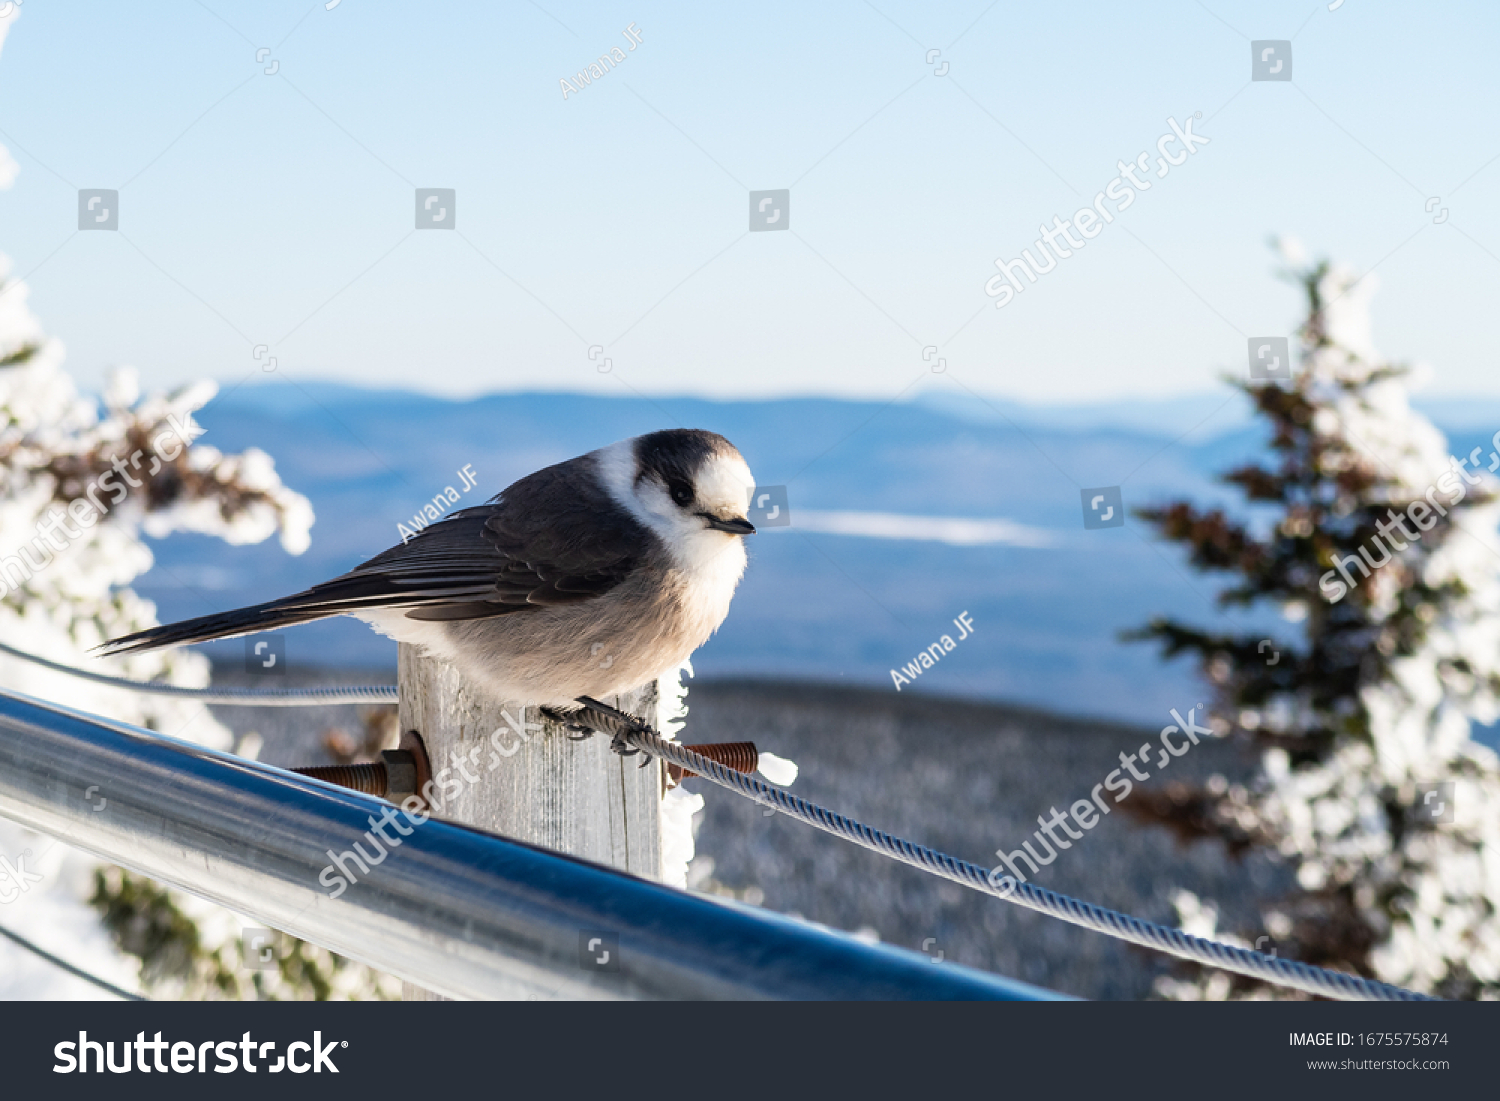 stock-photo-closeup-of-a-beautiful-canad